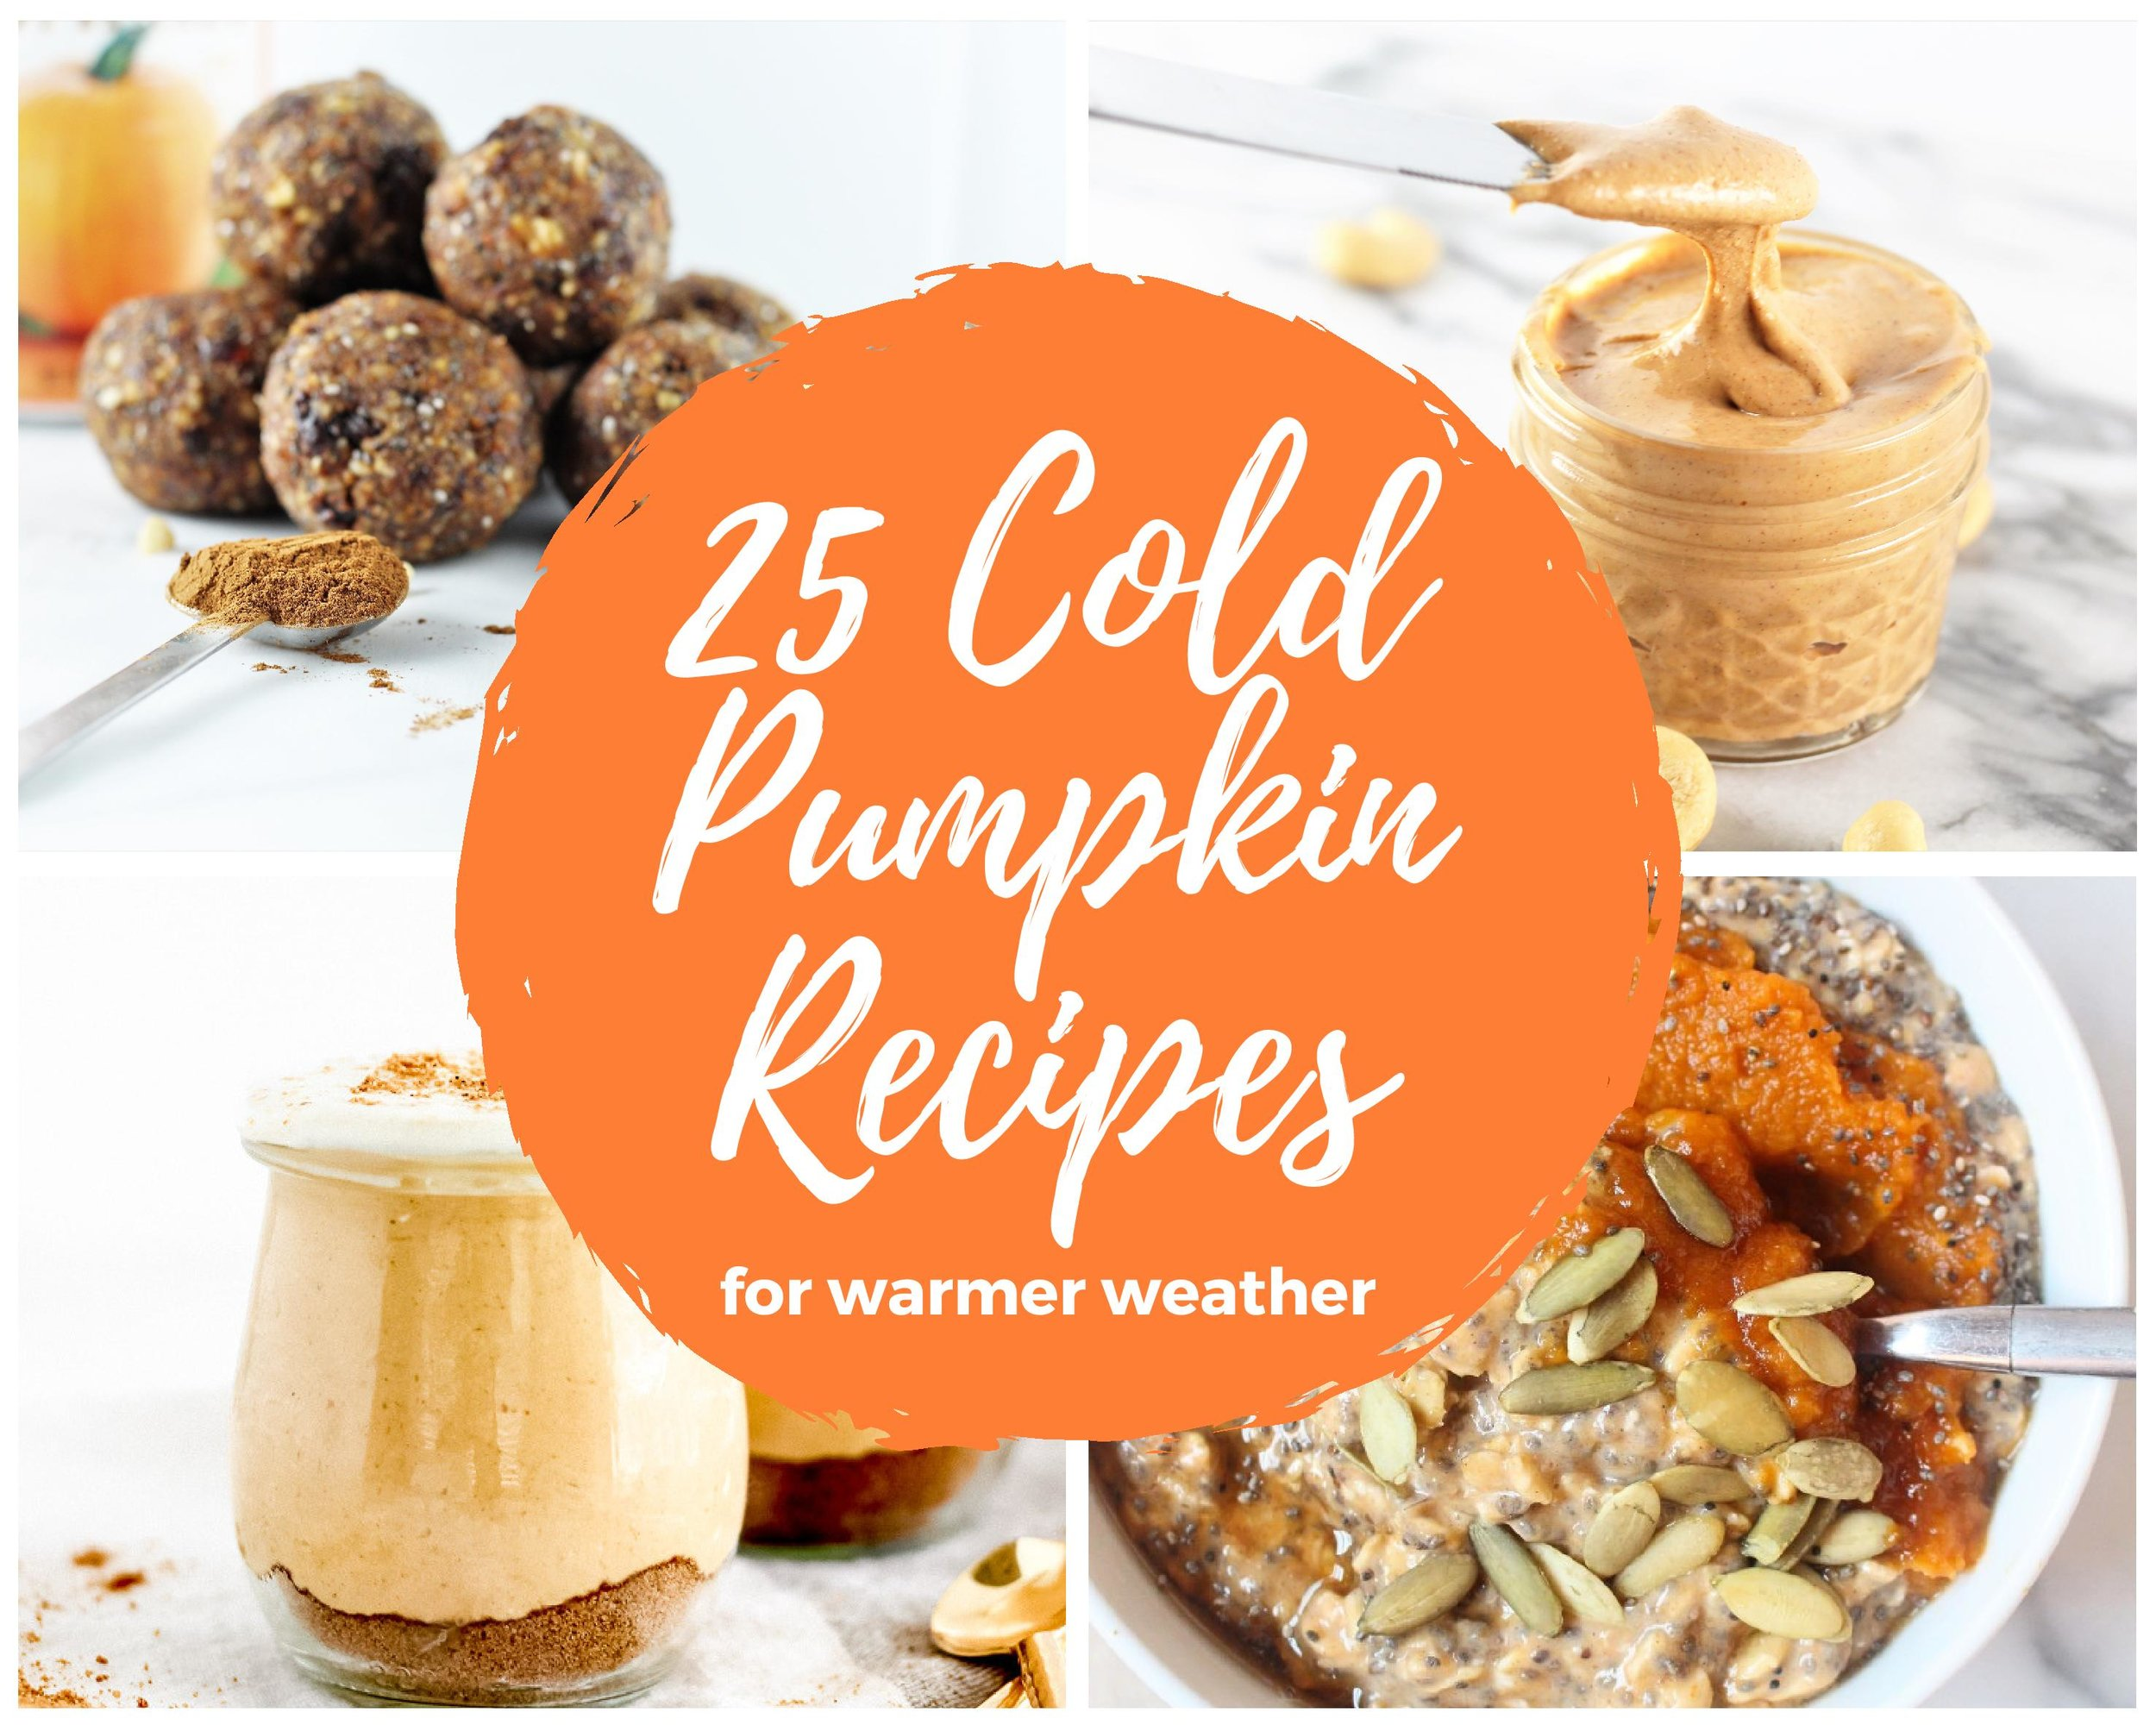 cold pumpkin recipes for warmer weather